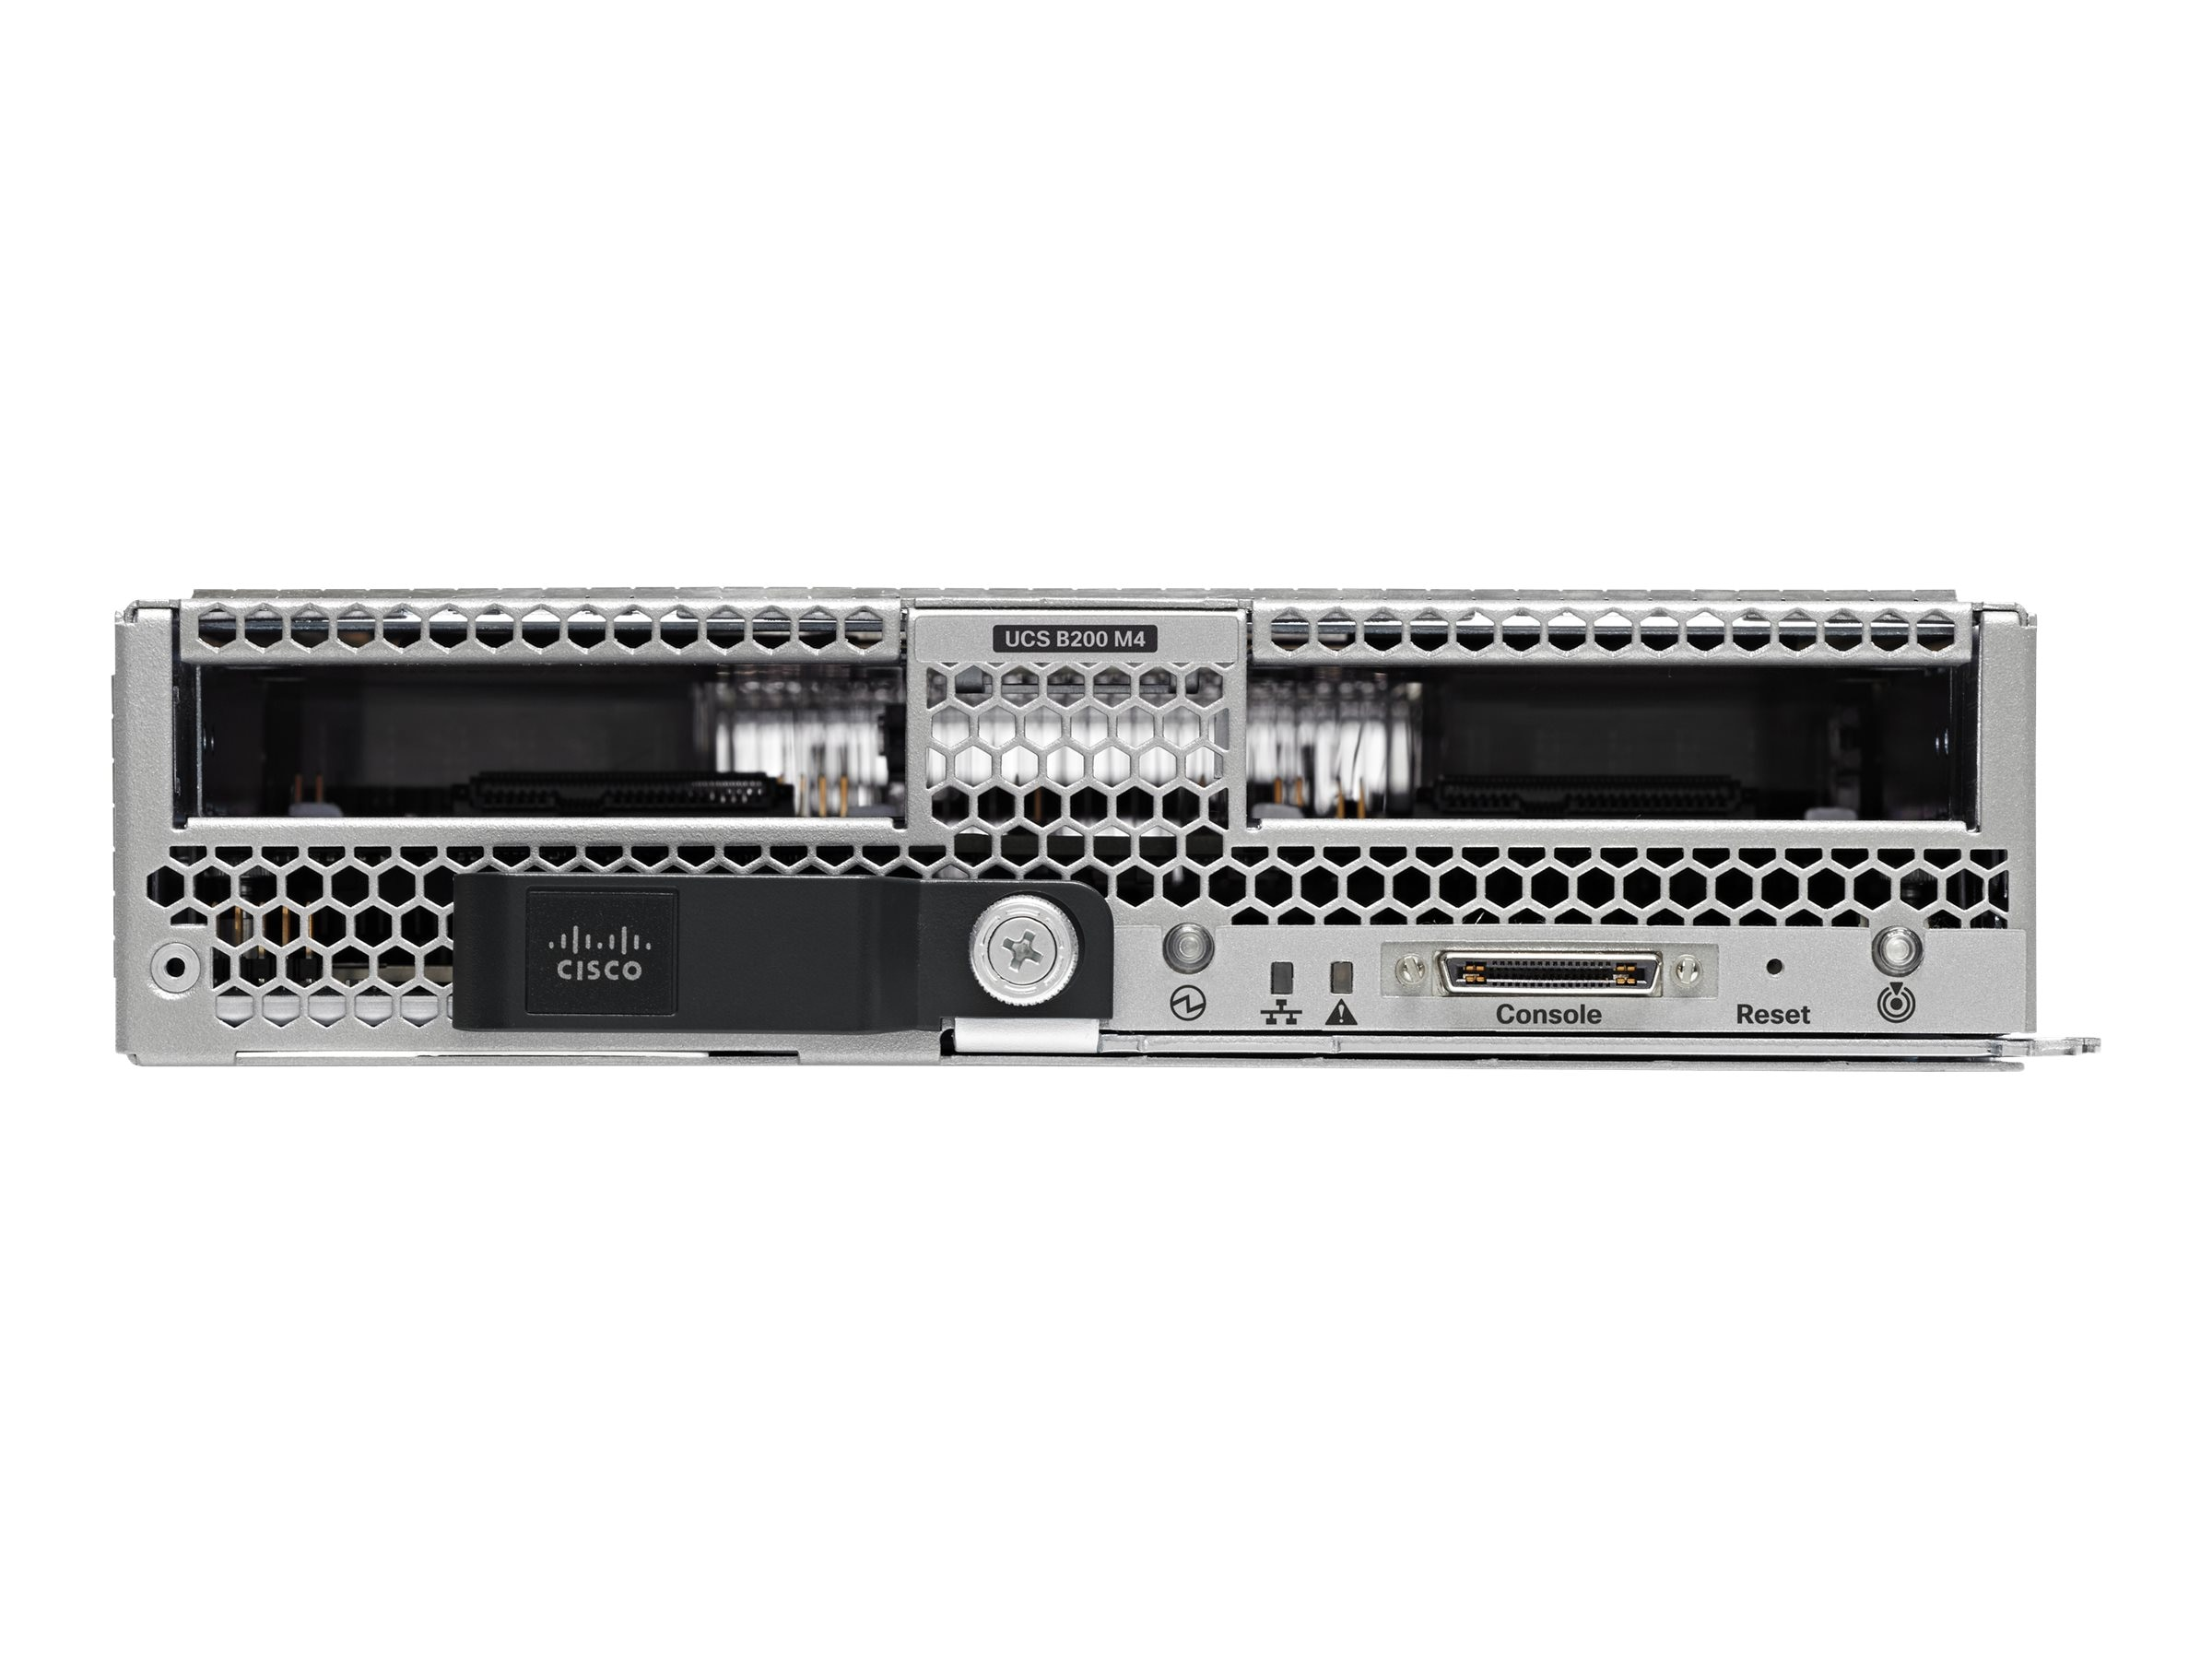 Cisco UCSB-B200-M4-U Image 2